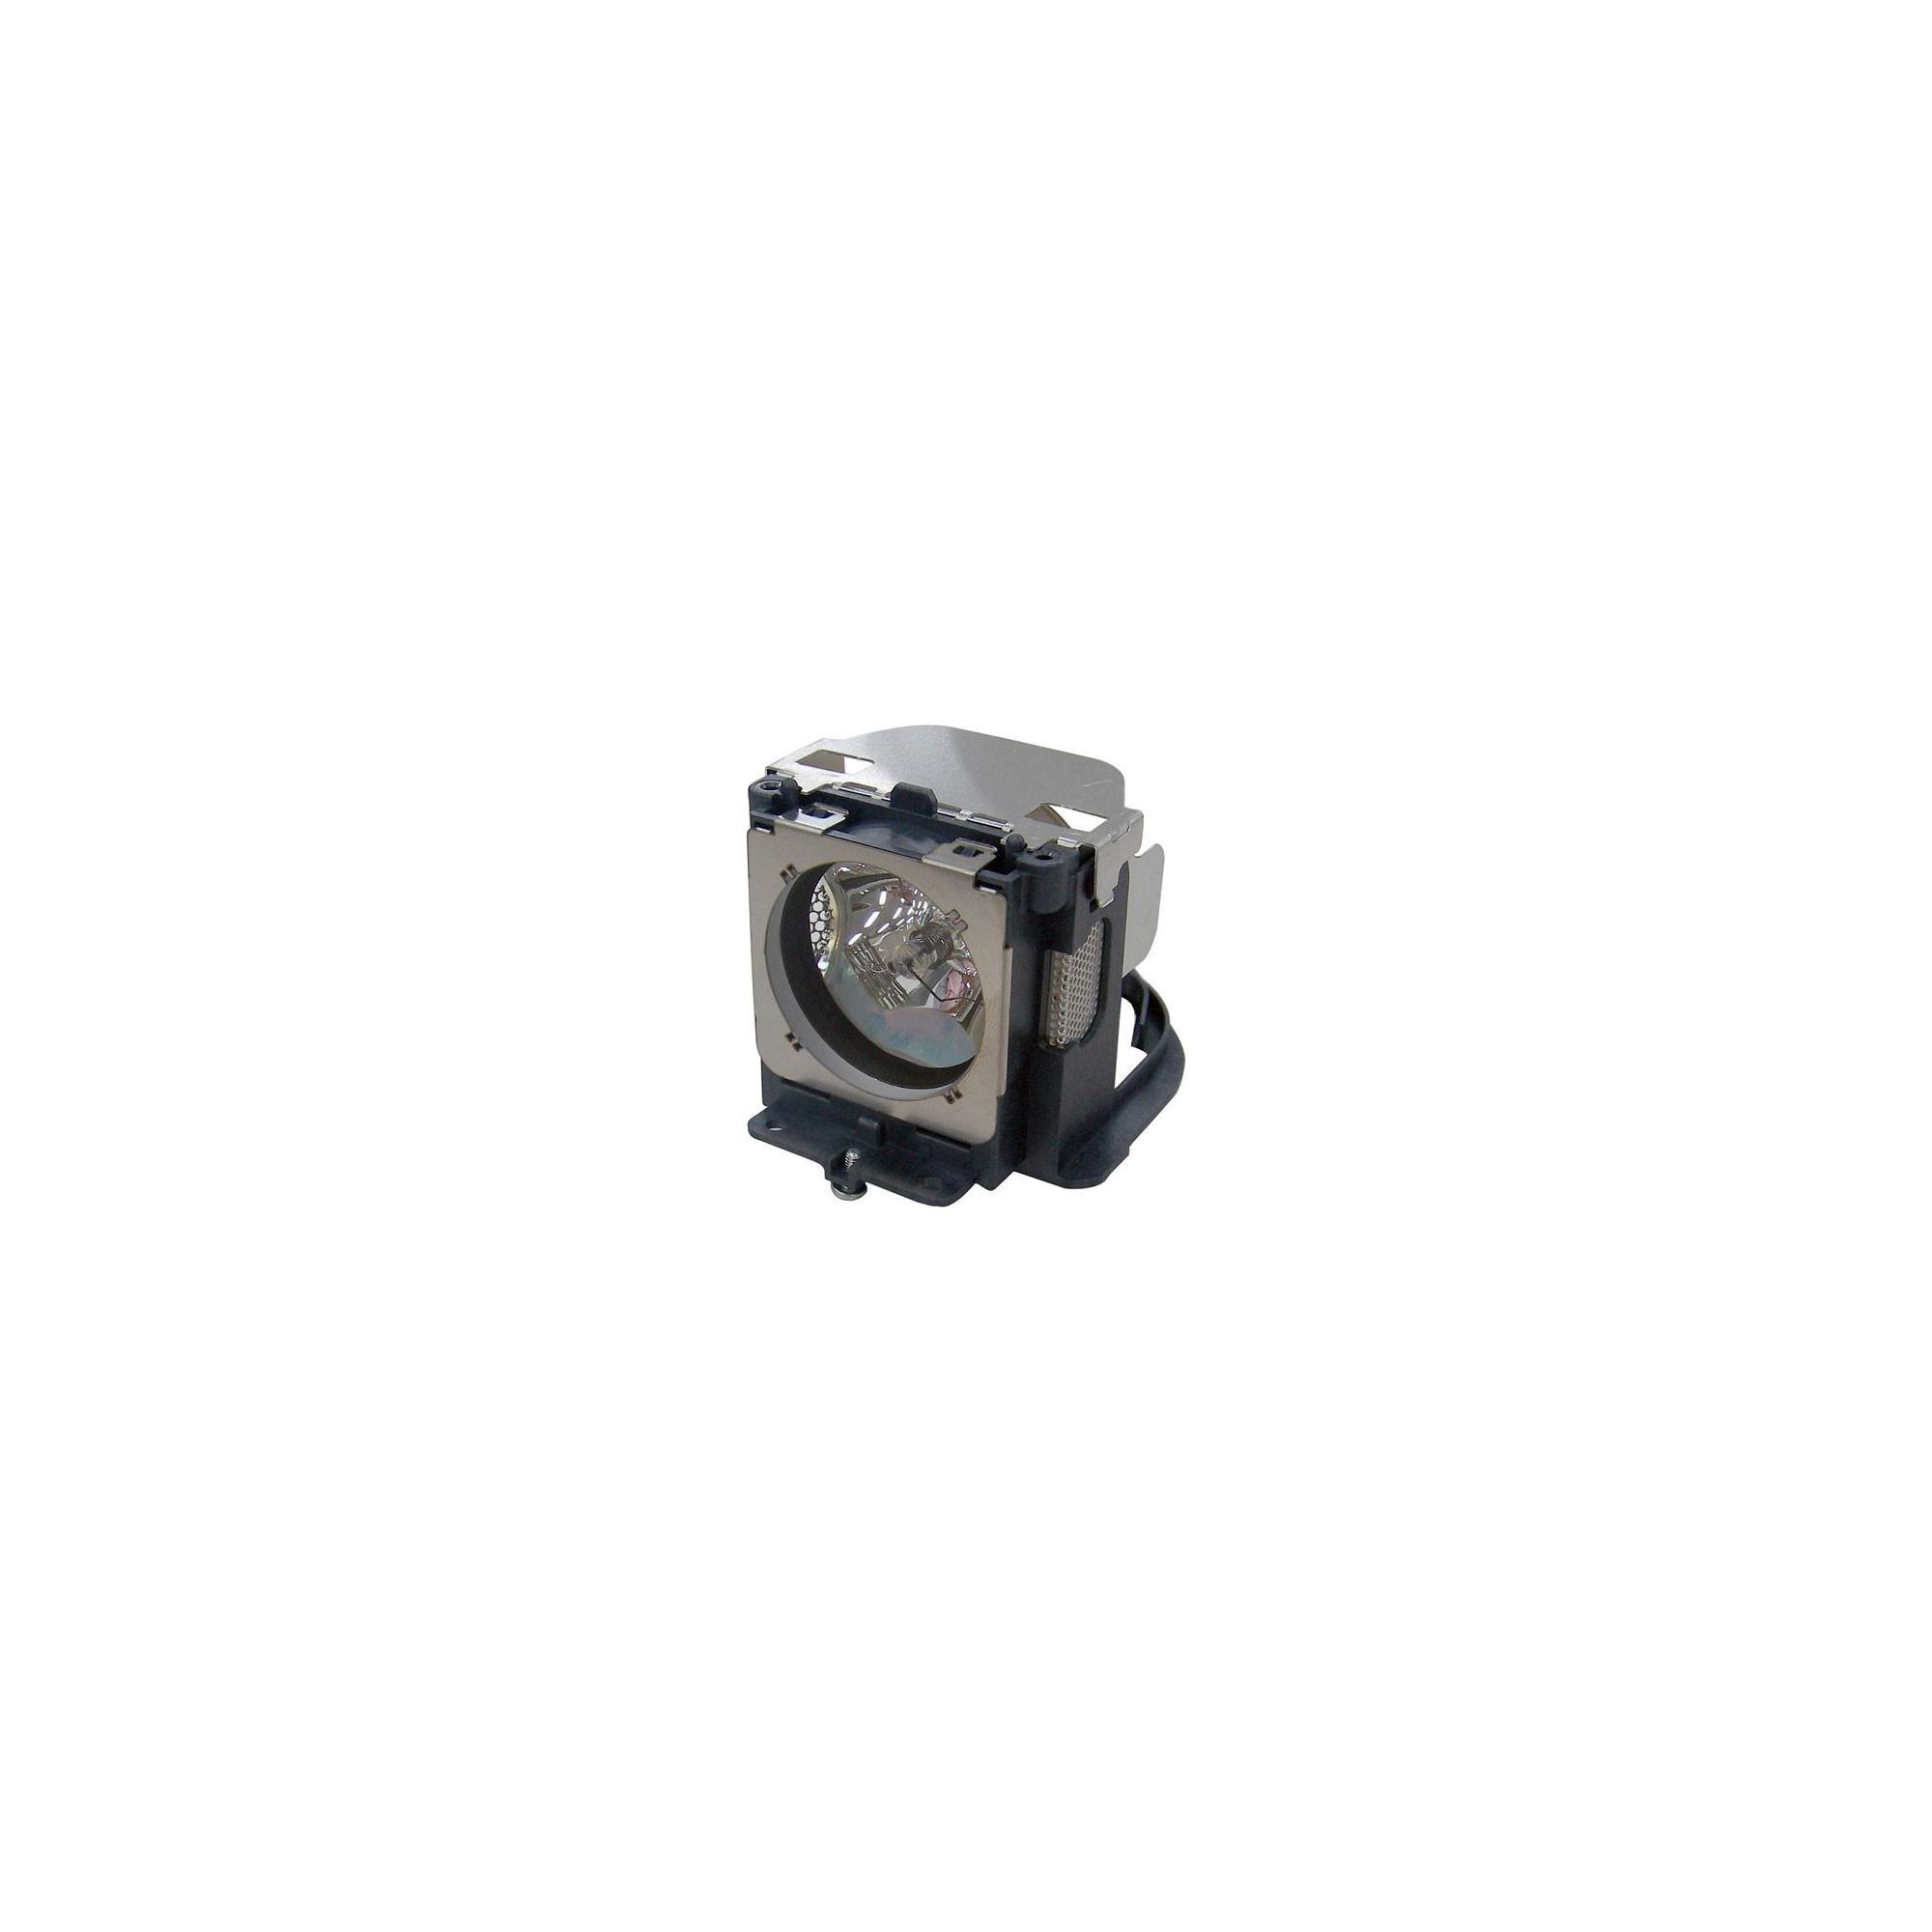 Sanyo Replacement Lamp Module for PLC-XP100L Projector at Tesco Direct